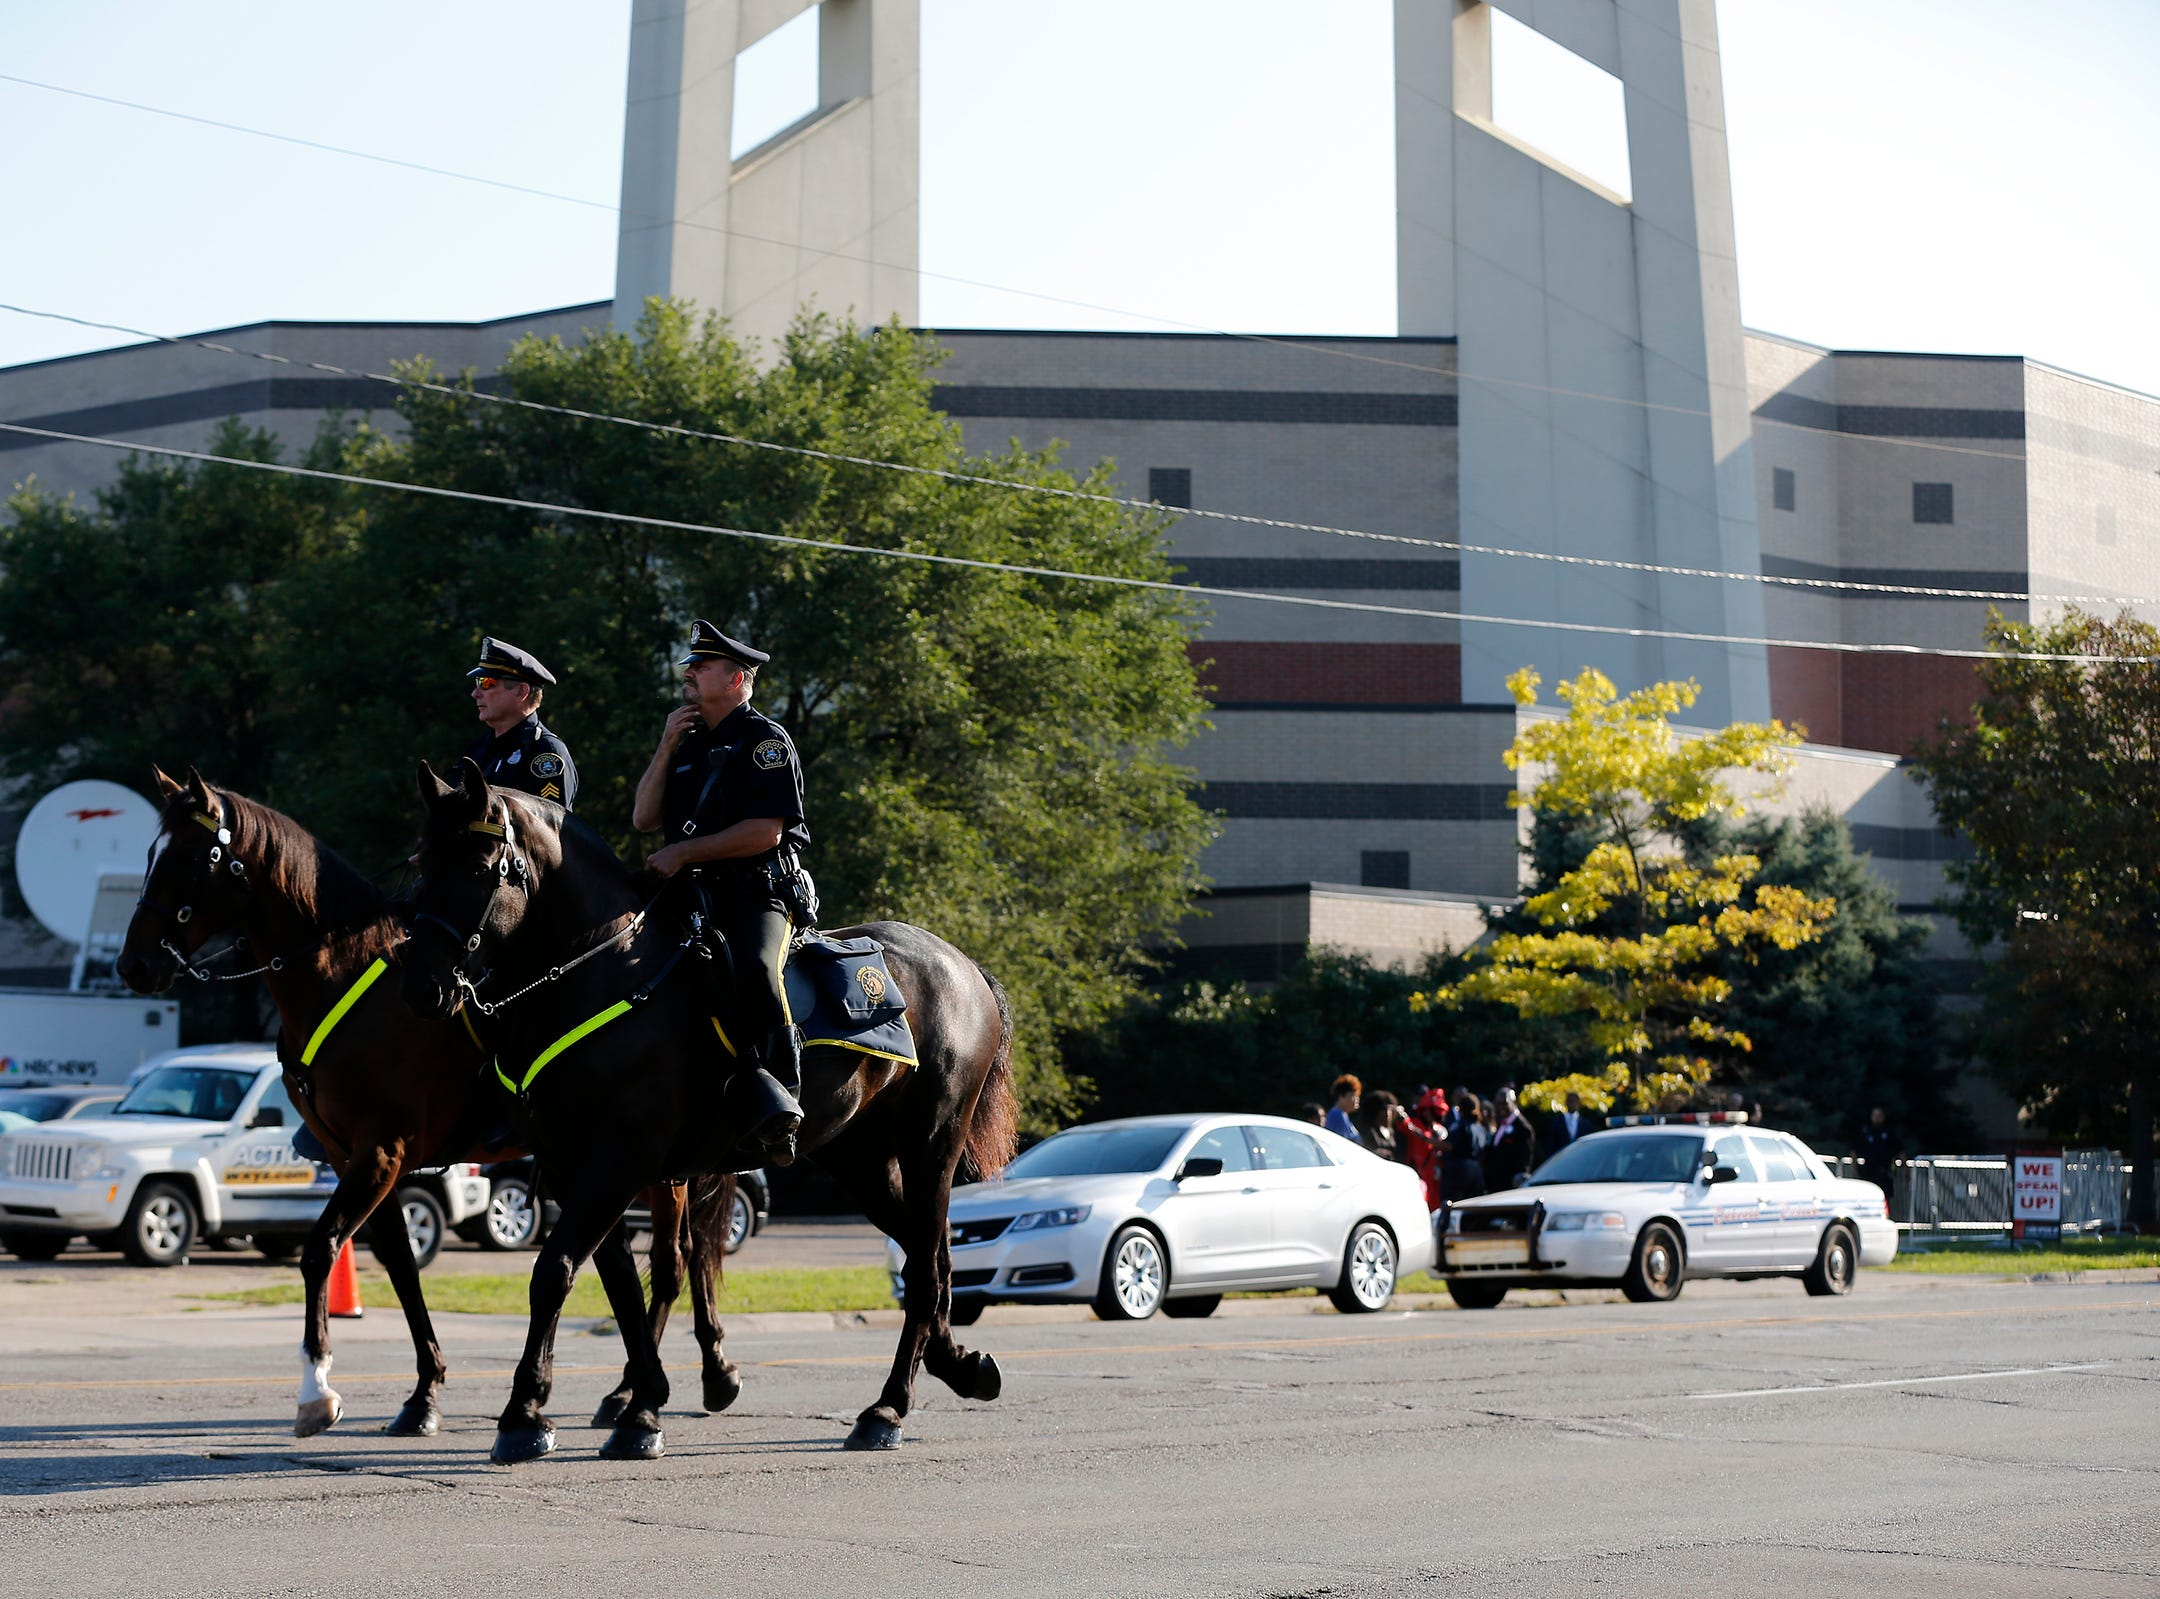 Mounted police arrive on 7 Mile Road during the funeral of Aretha Franklin outside the Greater Grace Temple in Detroit on Friday, Aug. 31, 2018.